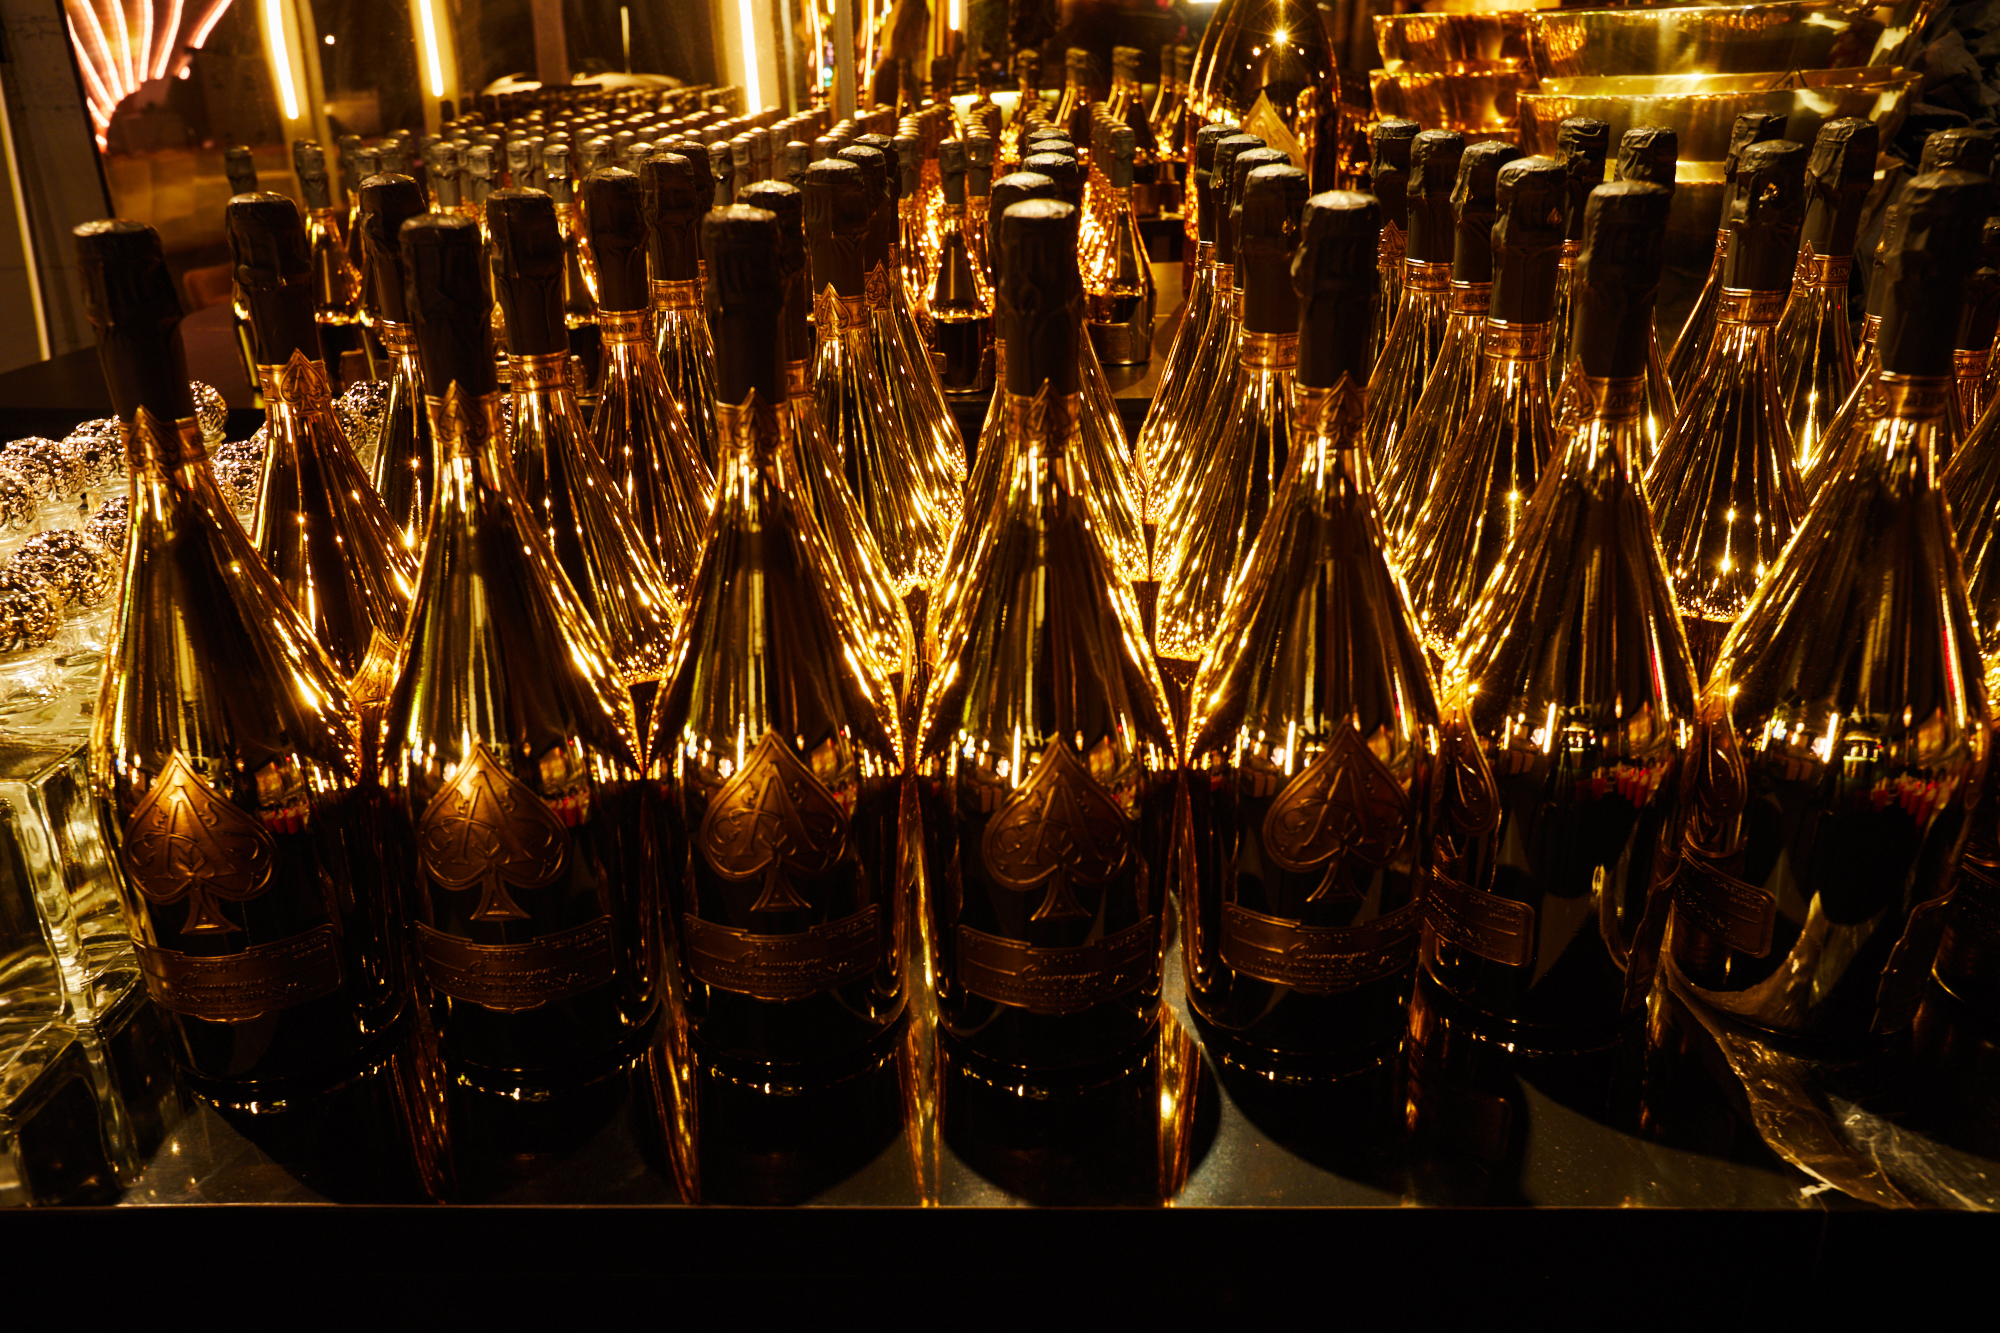 THE GOLD PARTY 2019 - Armand de Brignac Champagne